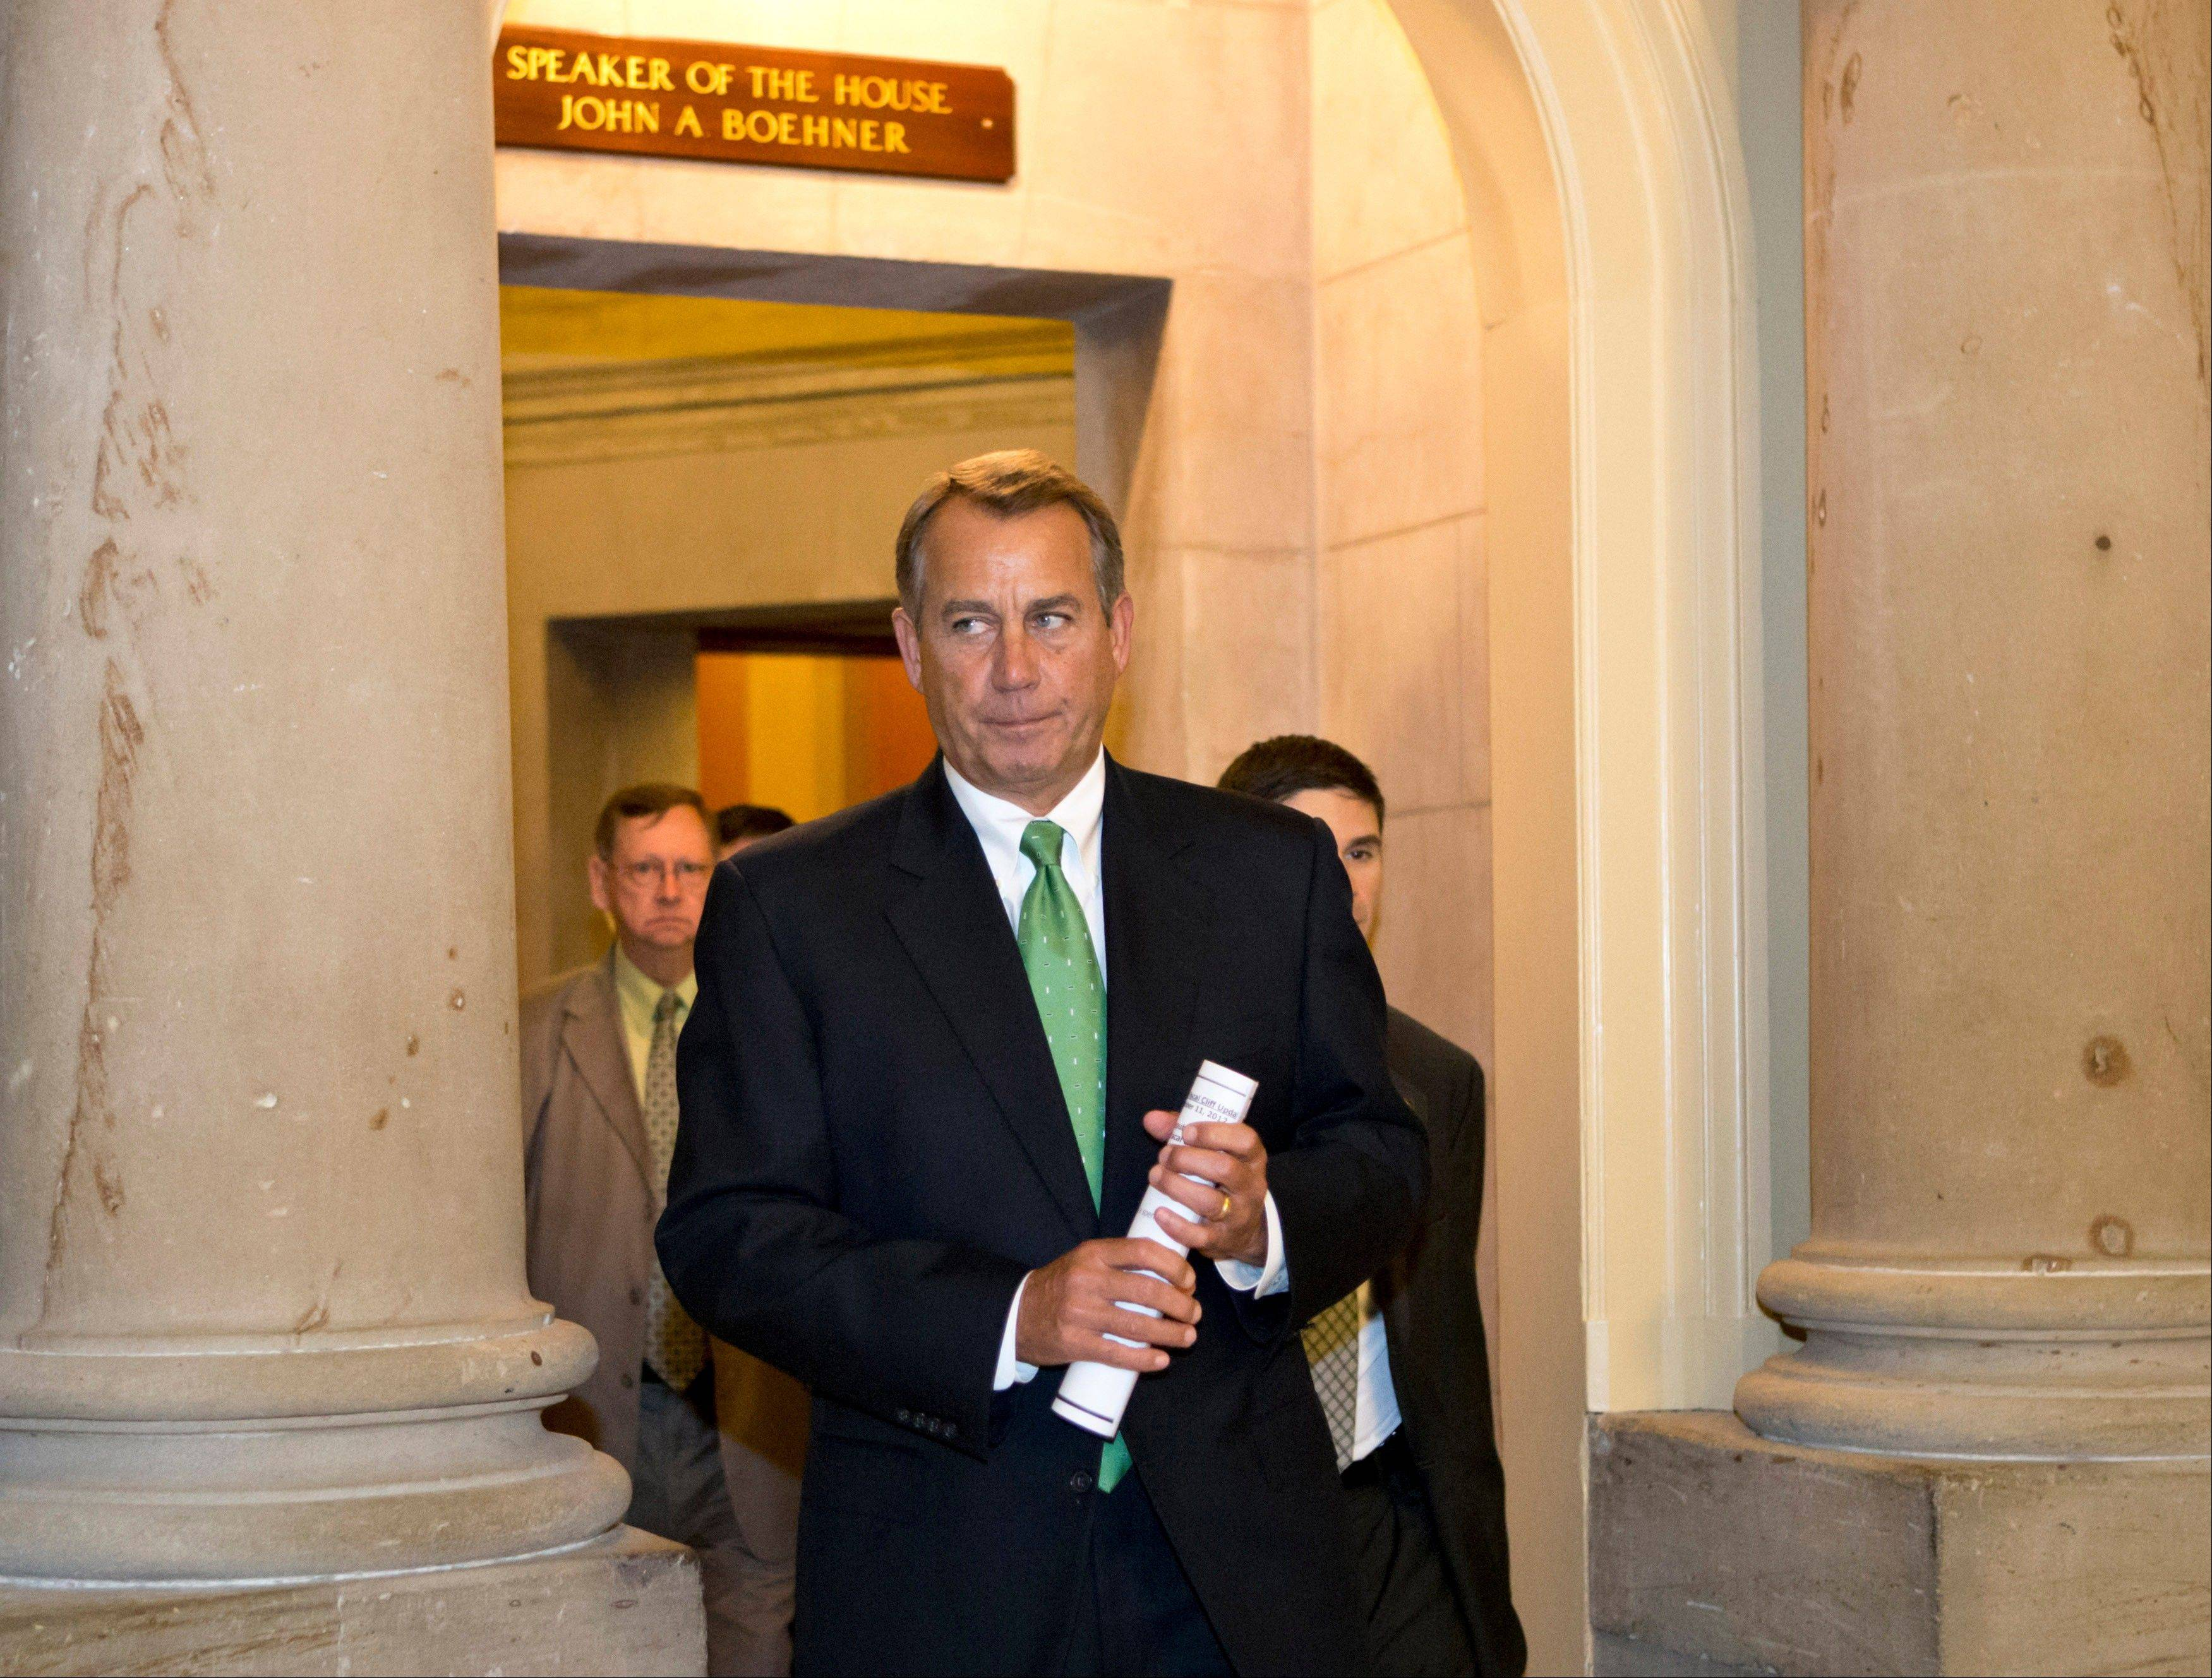 House Speaker John Boehner of Ohio leaves his office and walks to the House floor to deliver remarks about negotiations with President Obama on the fiscal cliff, on Capitol Hill in Washington.